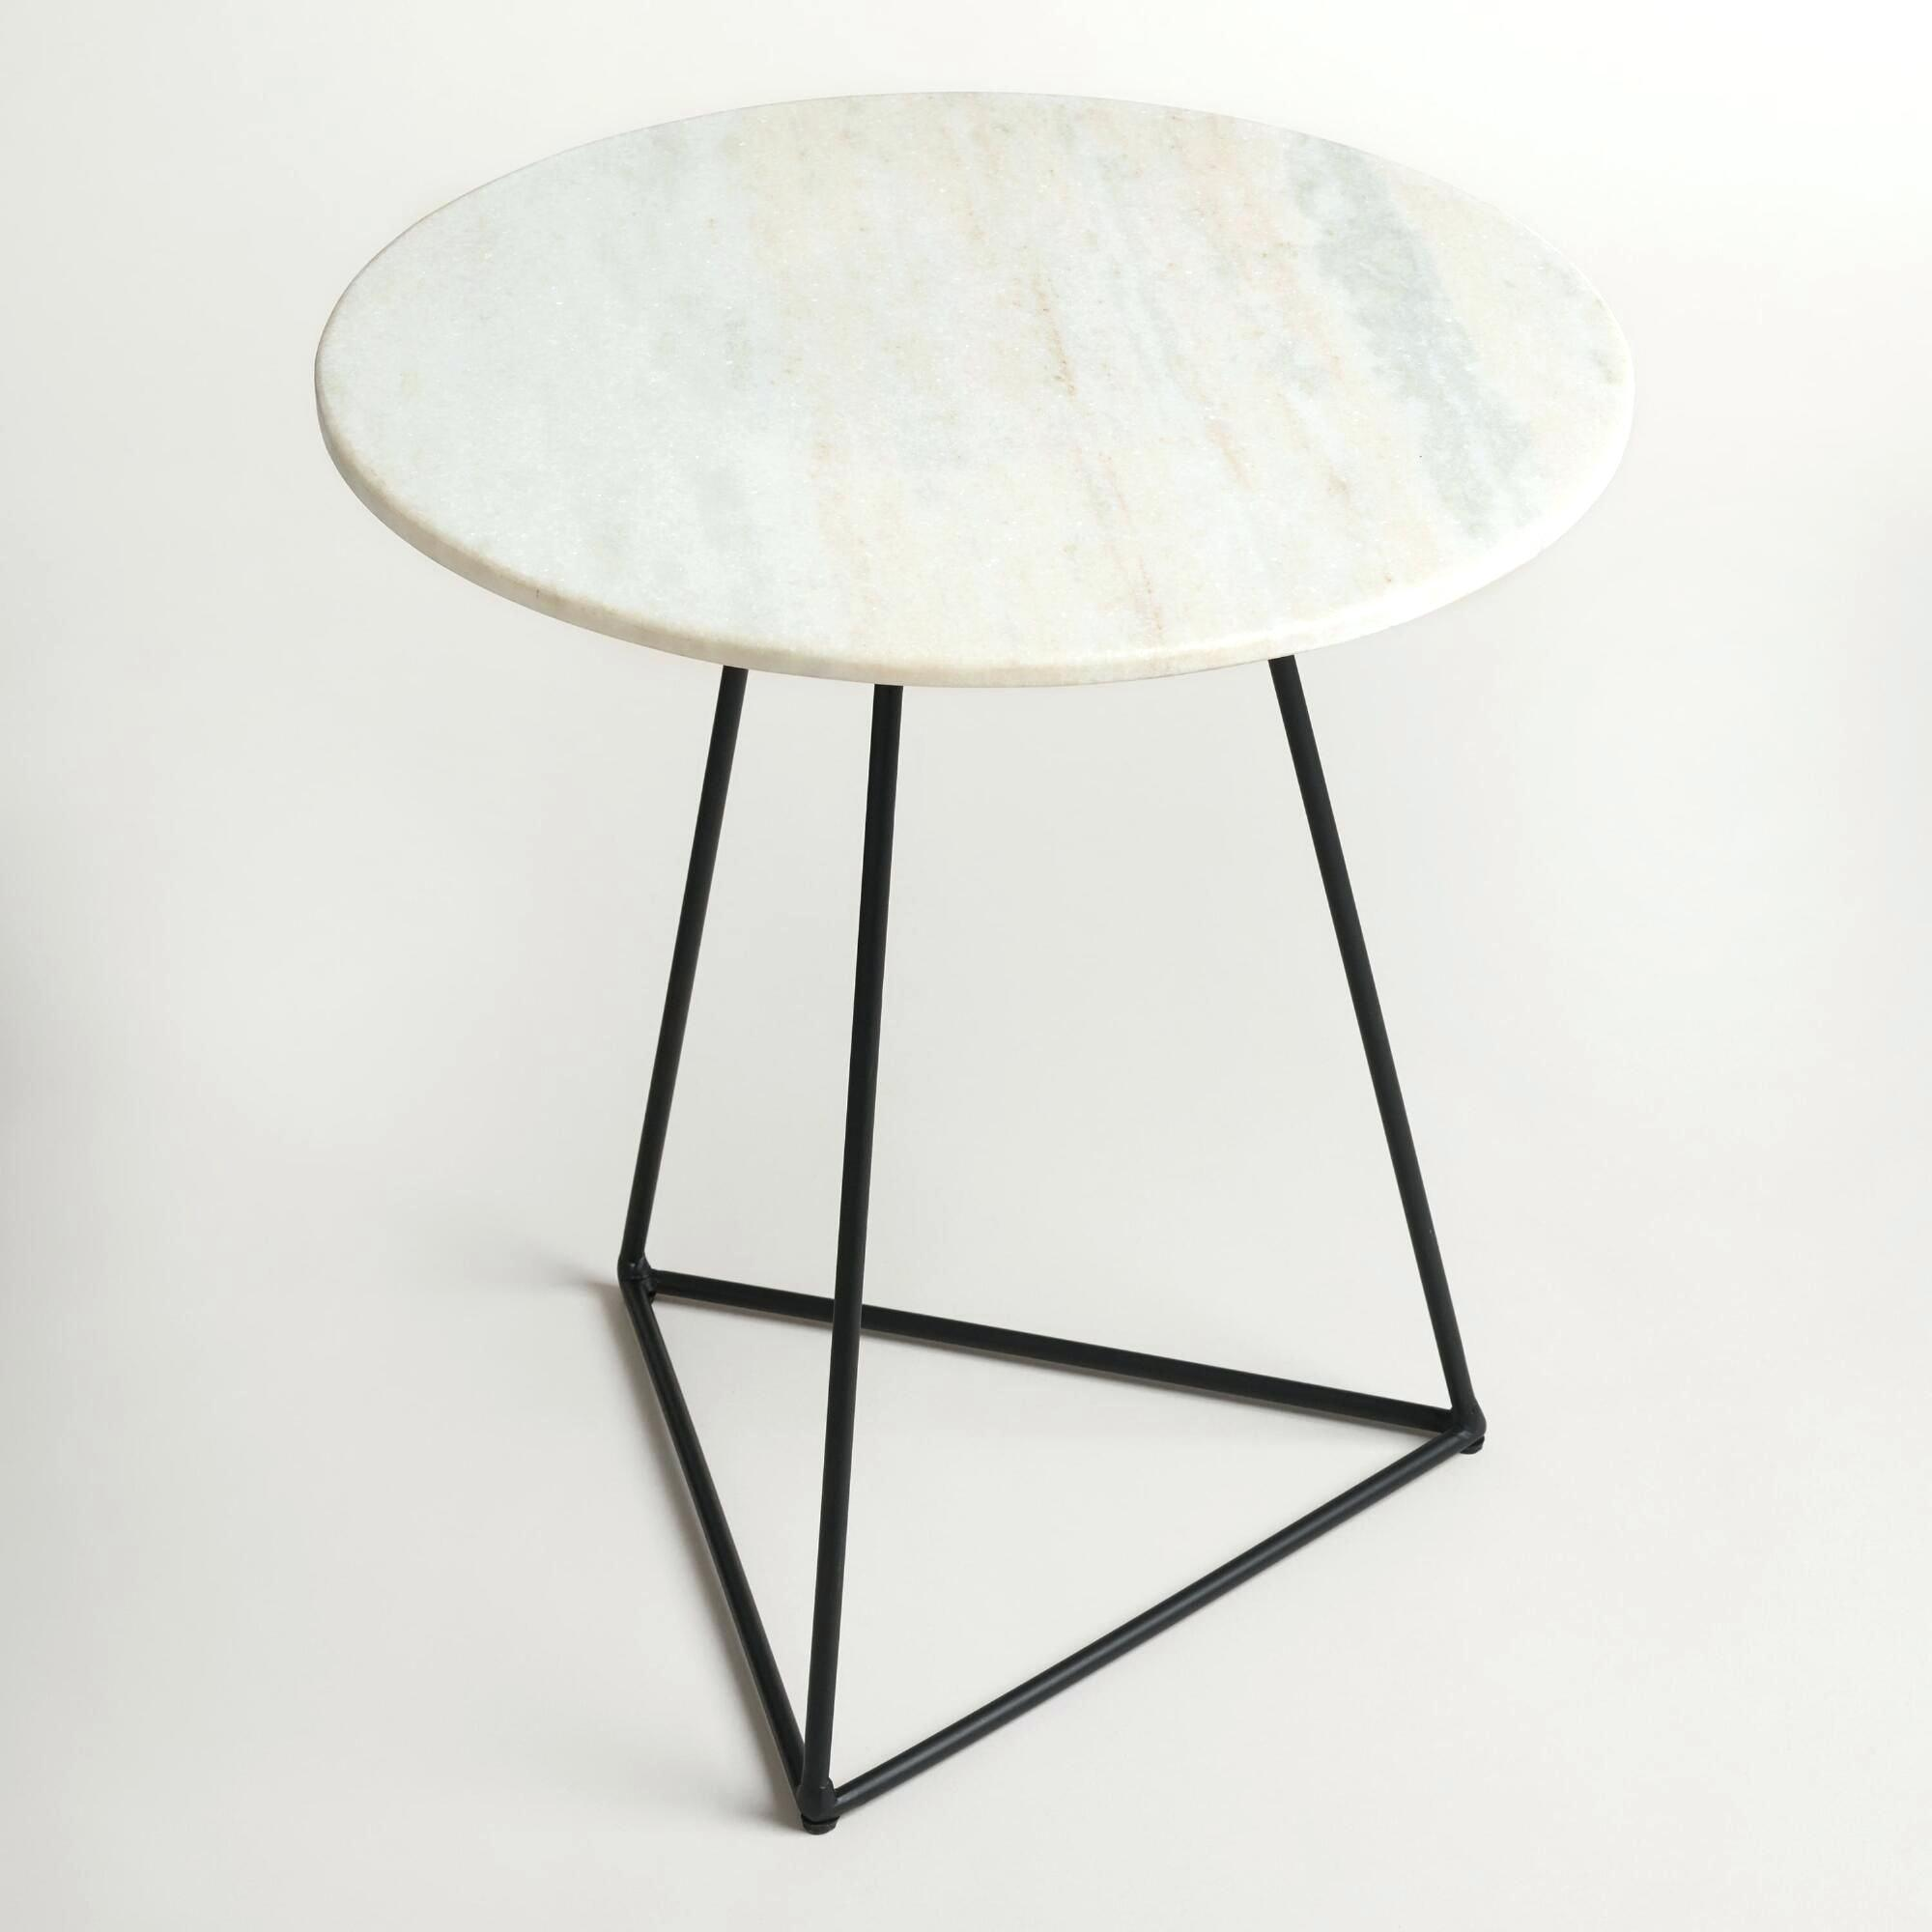 marble side table lanham top target parentplace site world market white and metal round accent coastal lamps nic umbrellas acrylic coffee with shelf door threshold cover glass